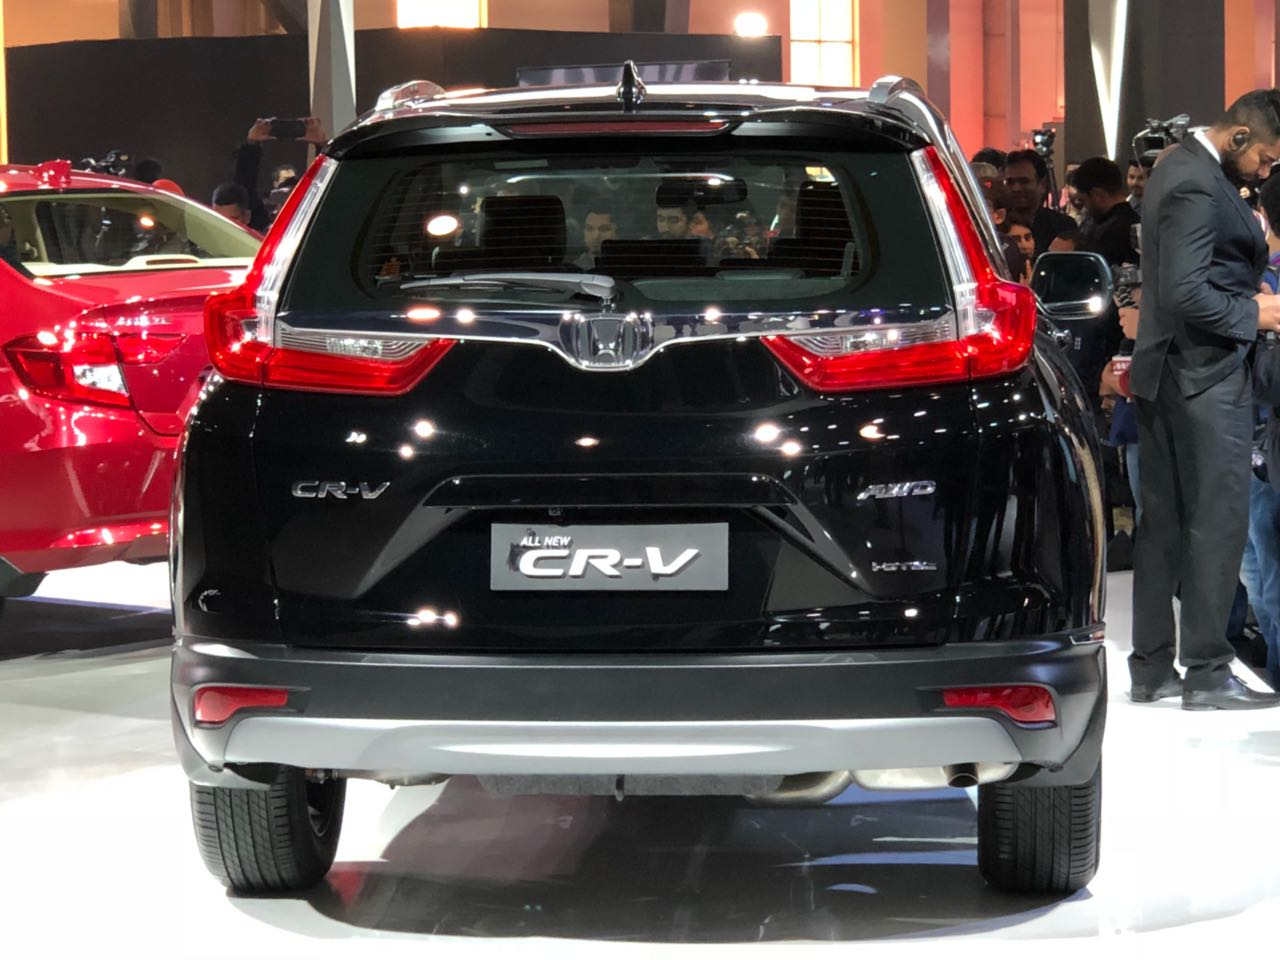 all new honda crv 2018 unveiled at auto expo 2018 details images. Black Bedroom Furniture Sets. Home Design Ideas